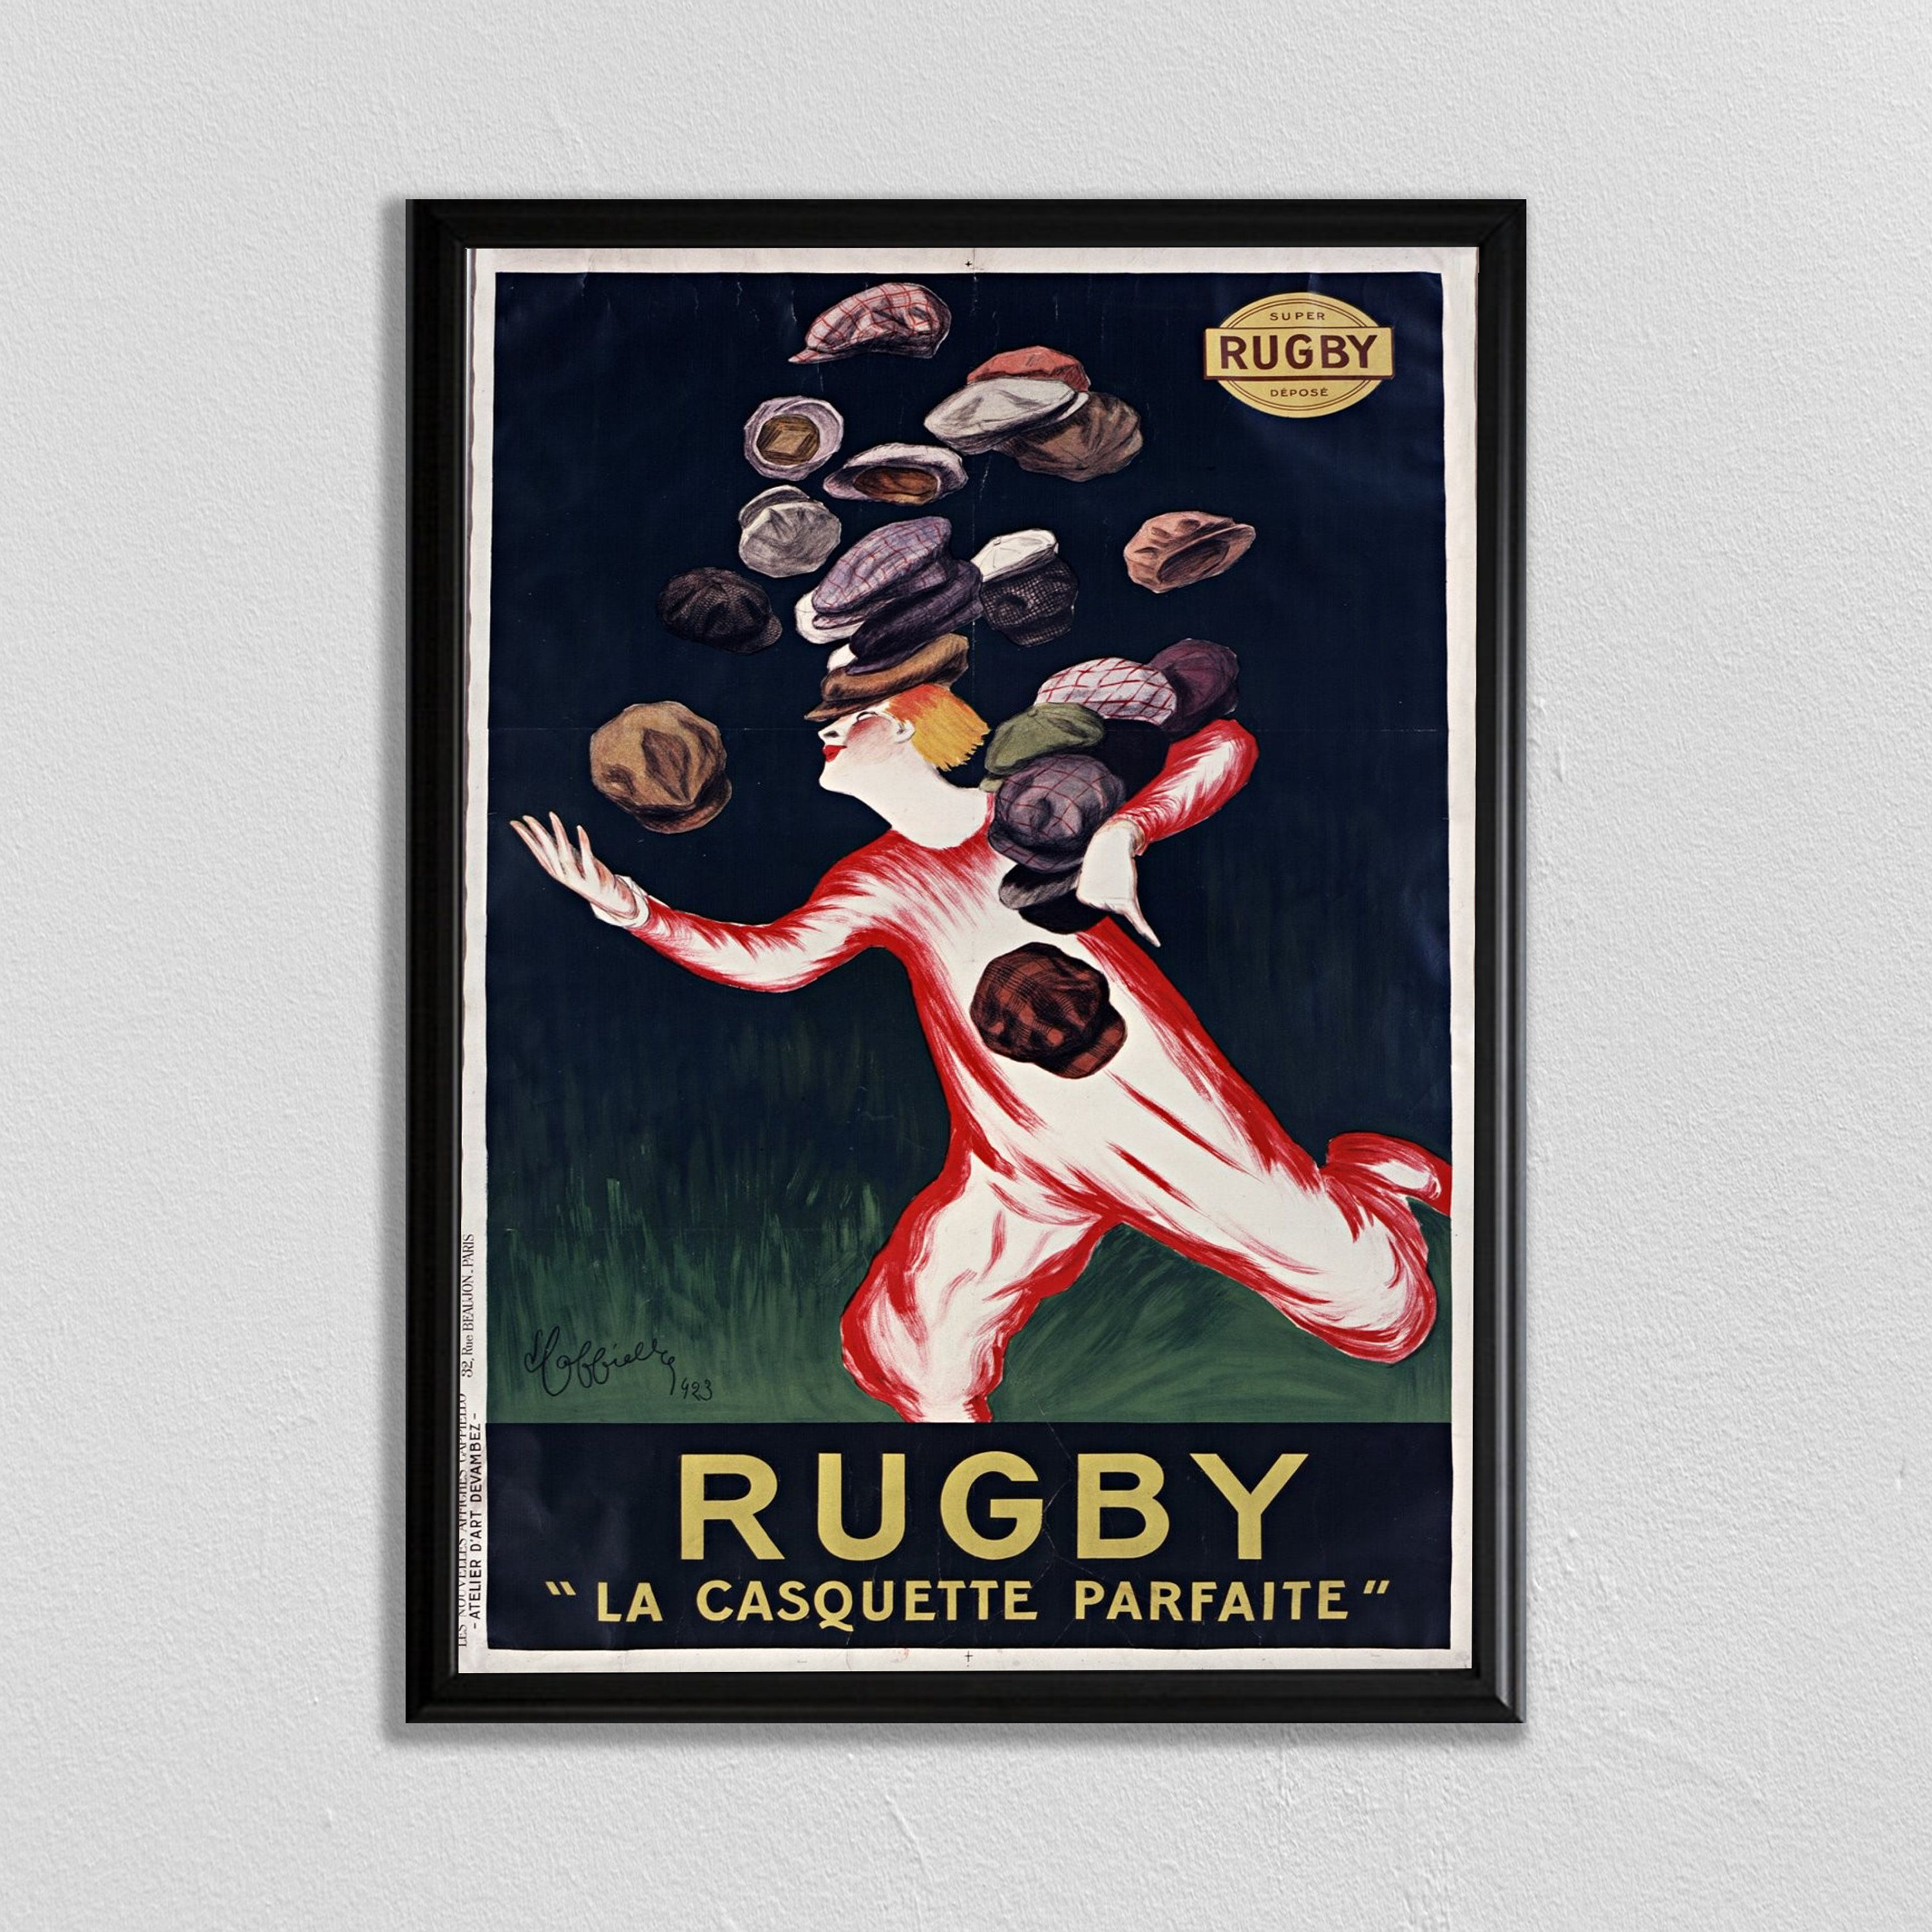 24x36 Rugby Cappiello Vintage Advert Art Poster Print